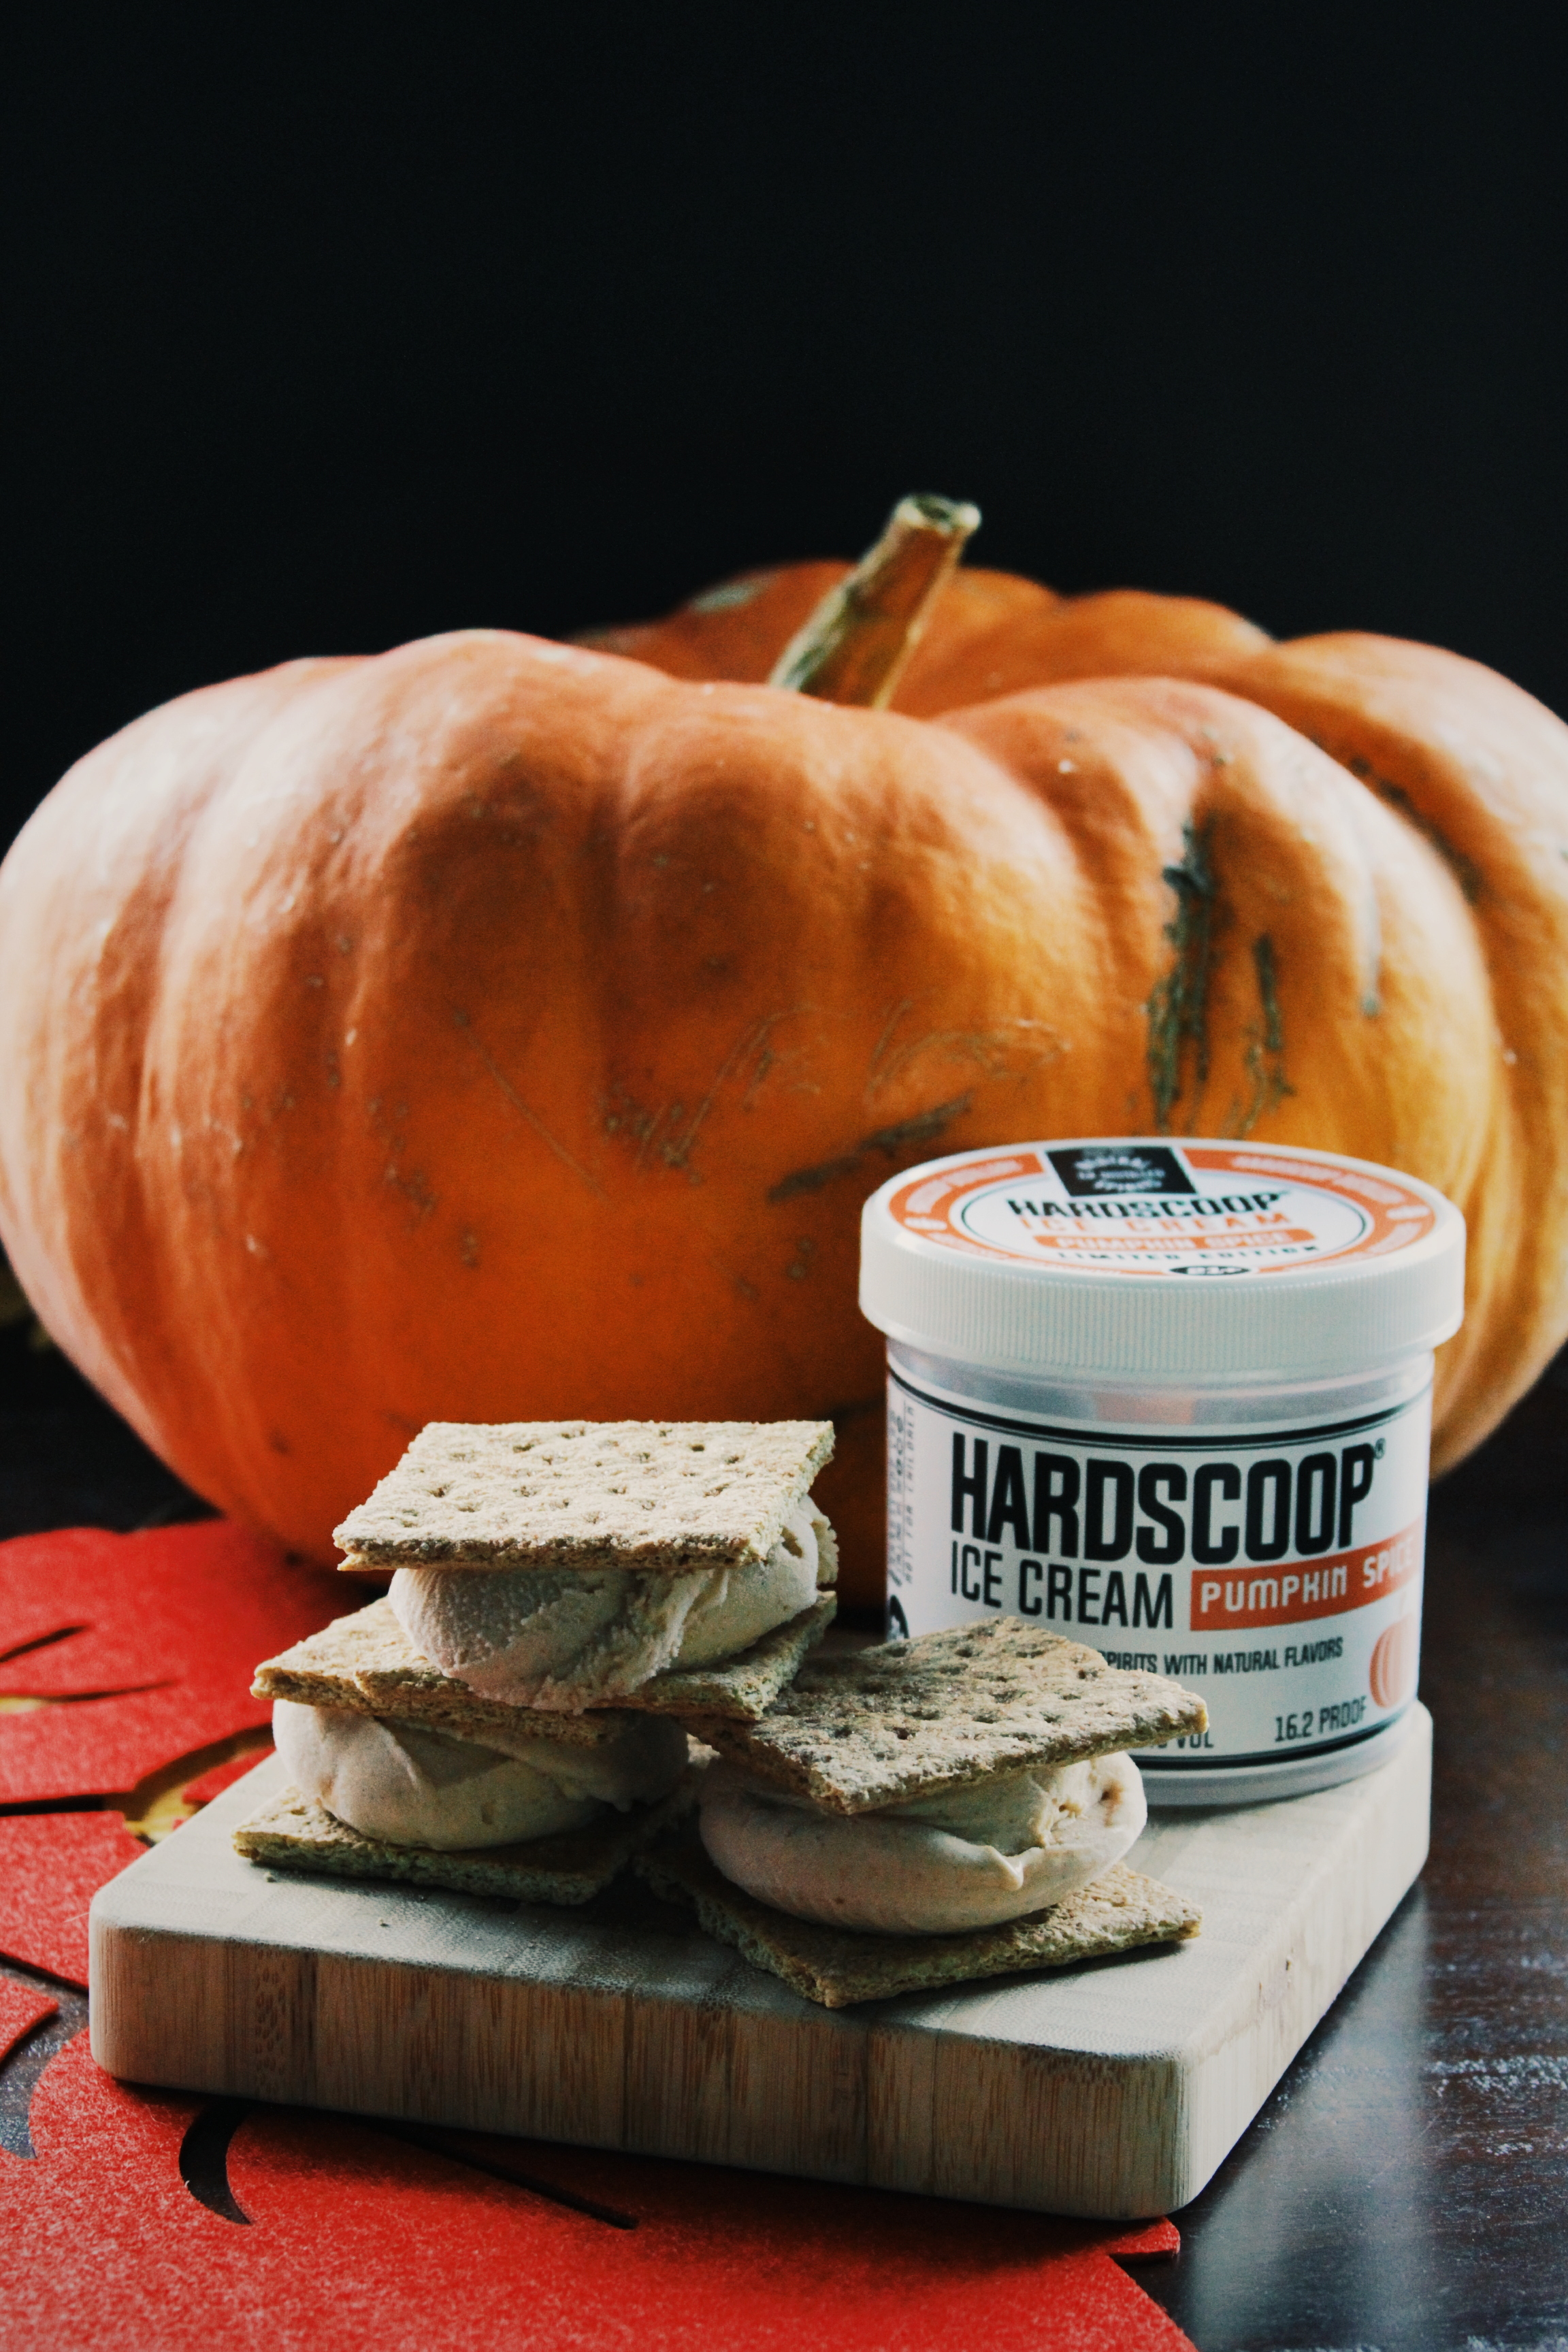 This is a picture of a pumpkin with pumpkin spice ice cream sandwiches on a wooden cutting board.